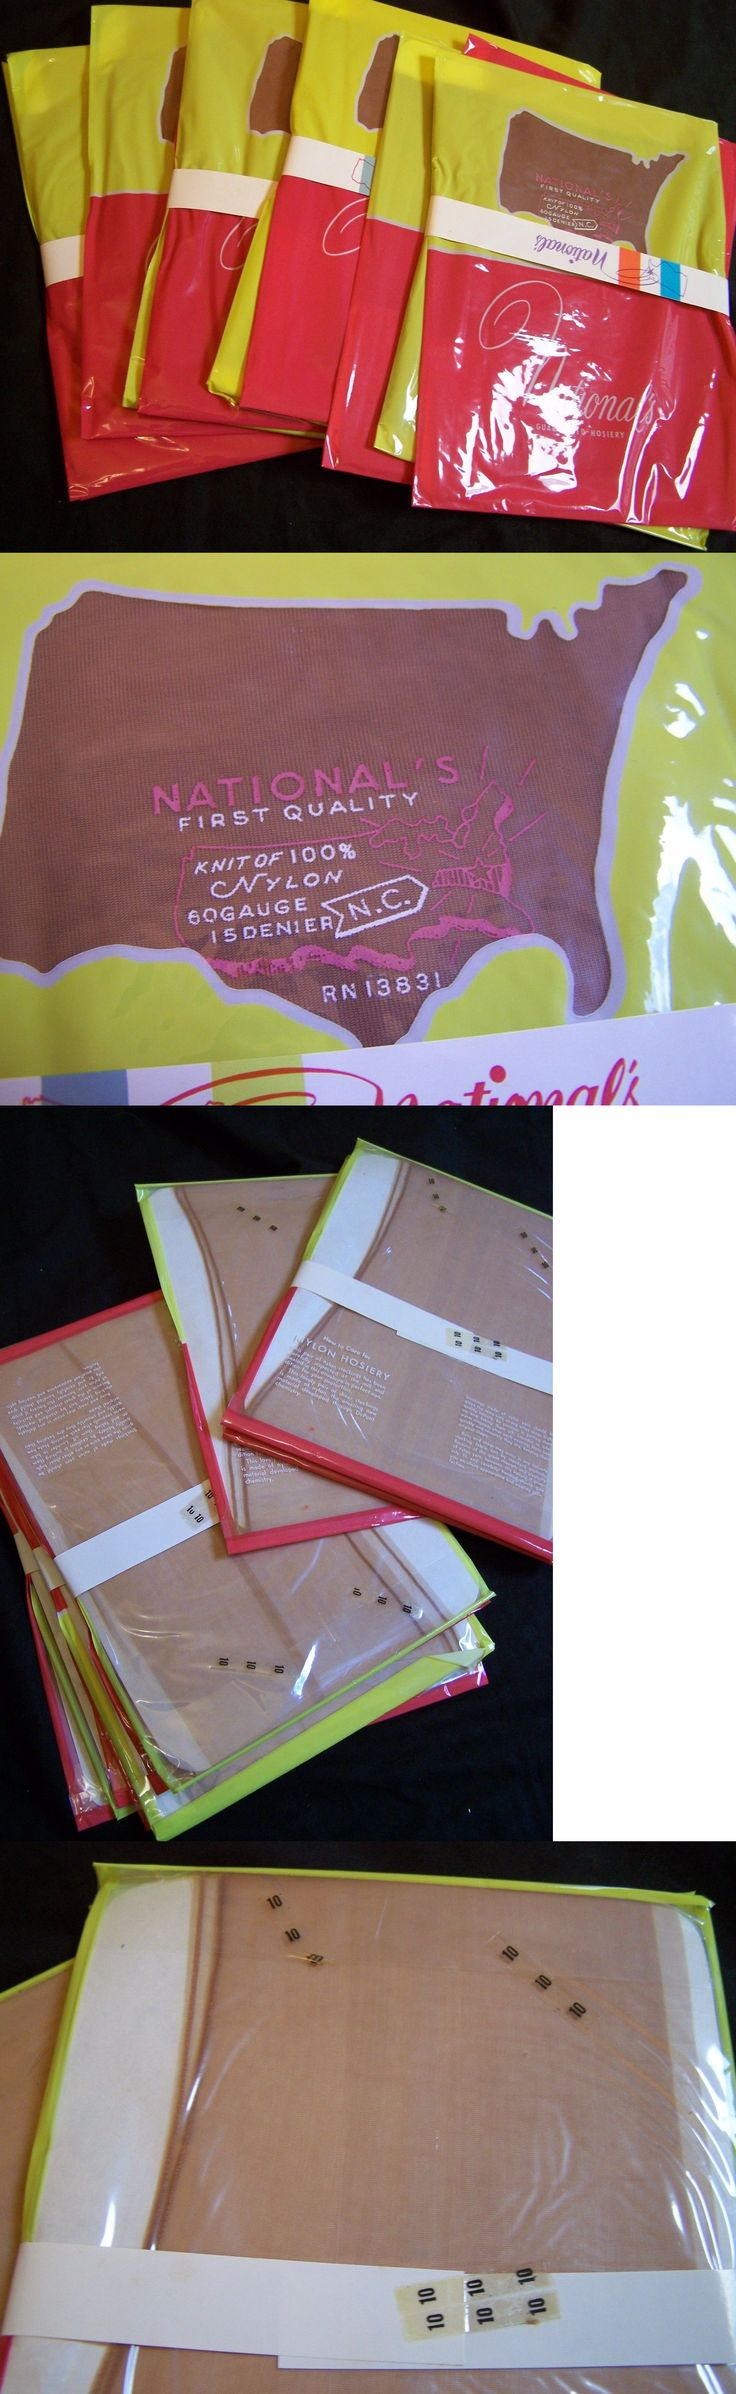 Stockings and Thigh-Highs 11527: 10 Lot~National S Seamed Nylons, Stockings Rn 13831, Size 10, Beige, Sealed -> BUY IT NOW ONLY: $100 on eBay!